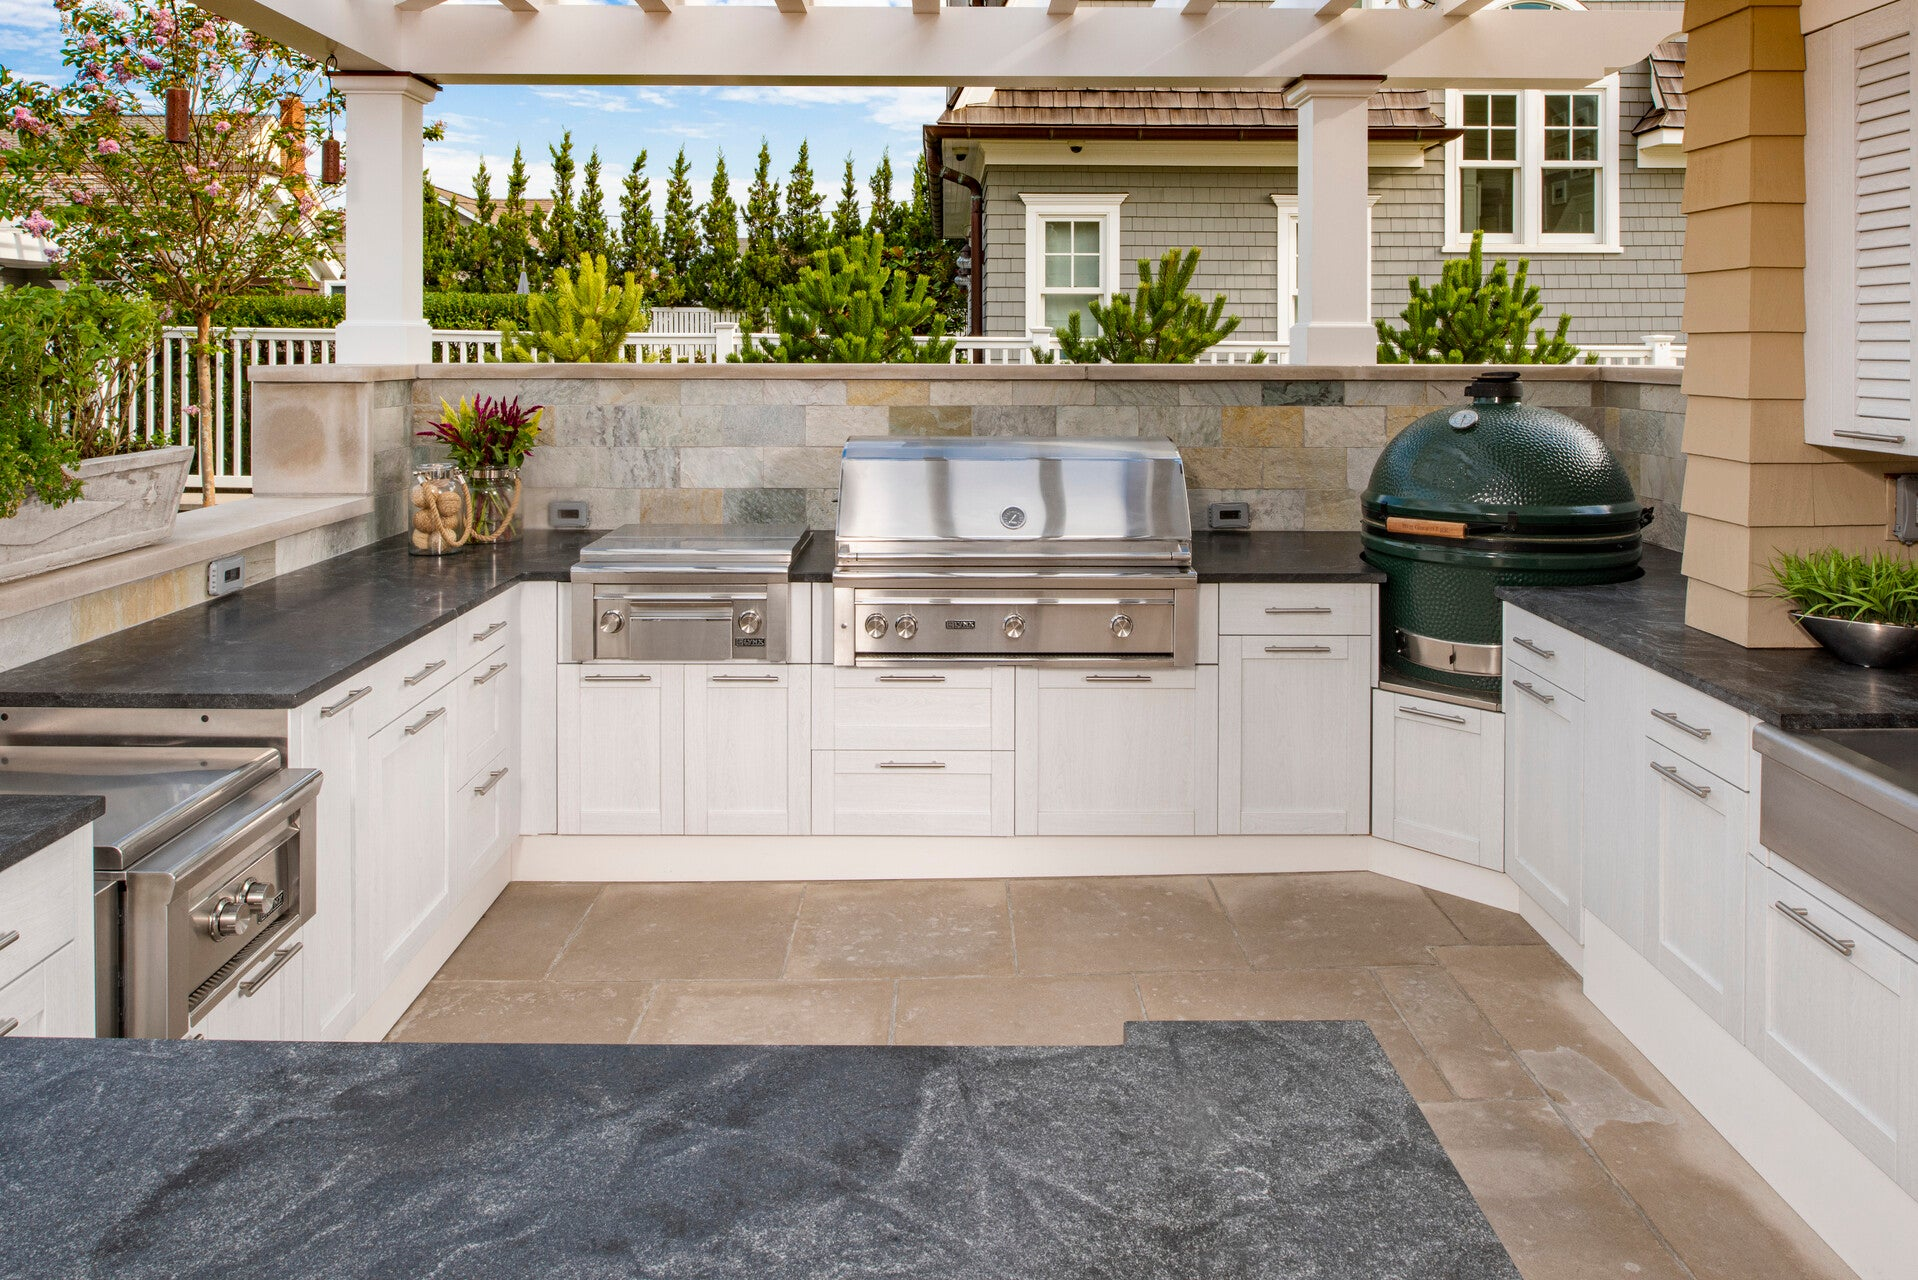 Outdoor kitchen 4 with side burner and big green egg